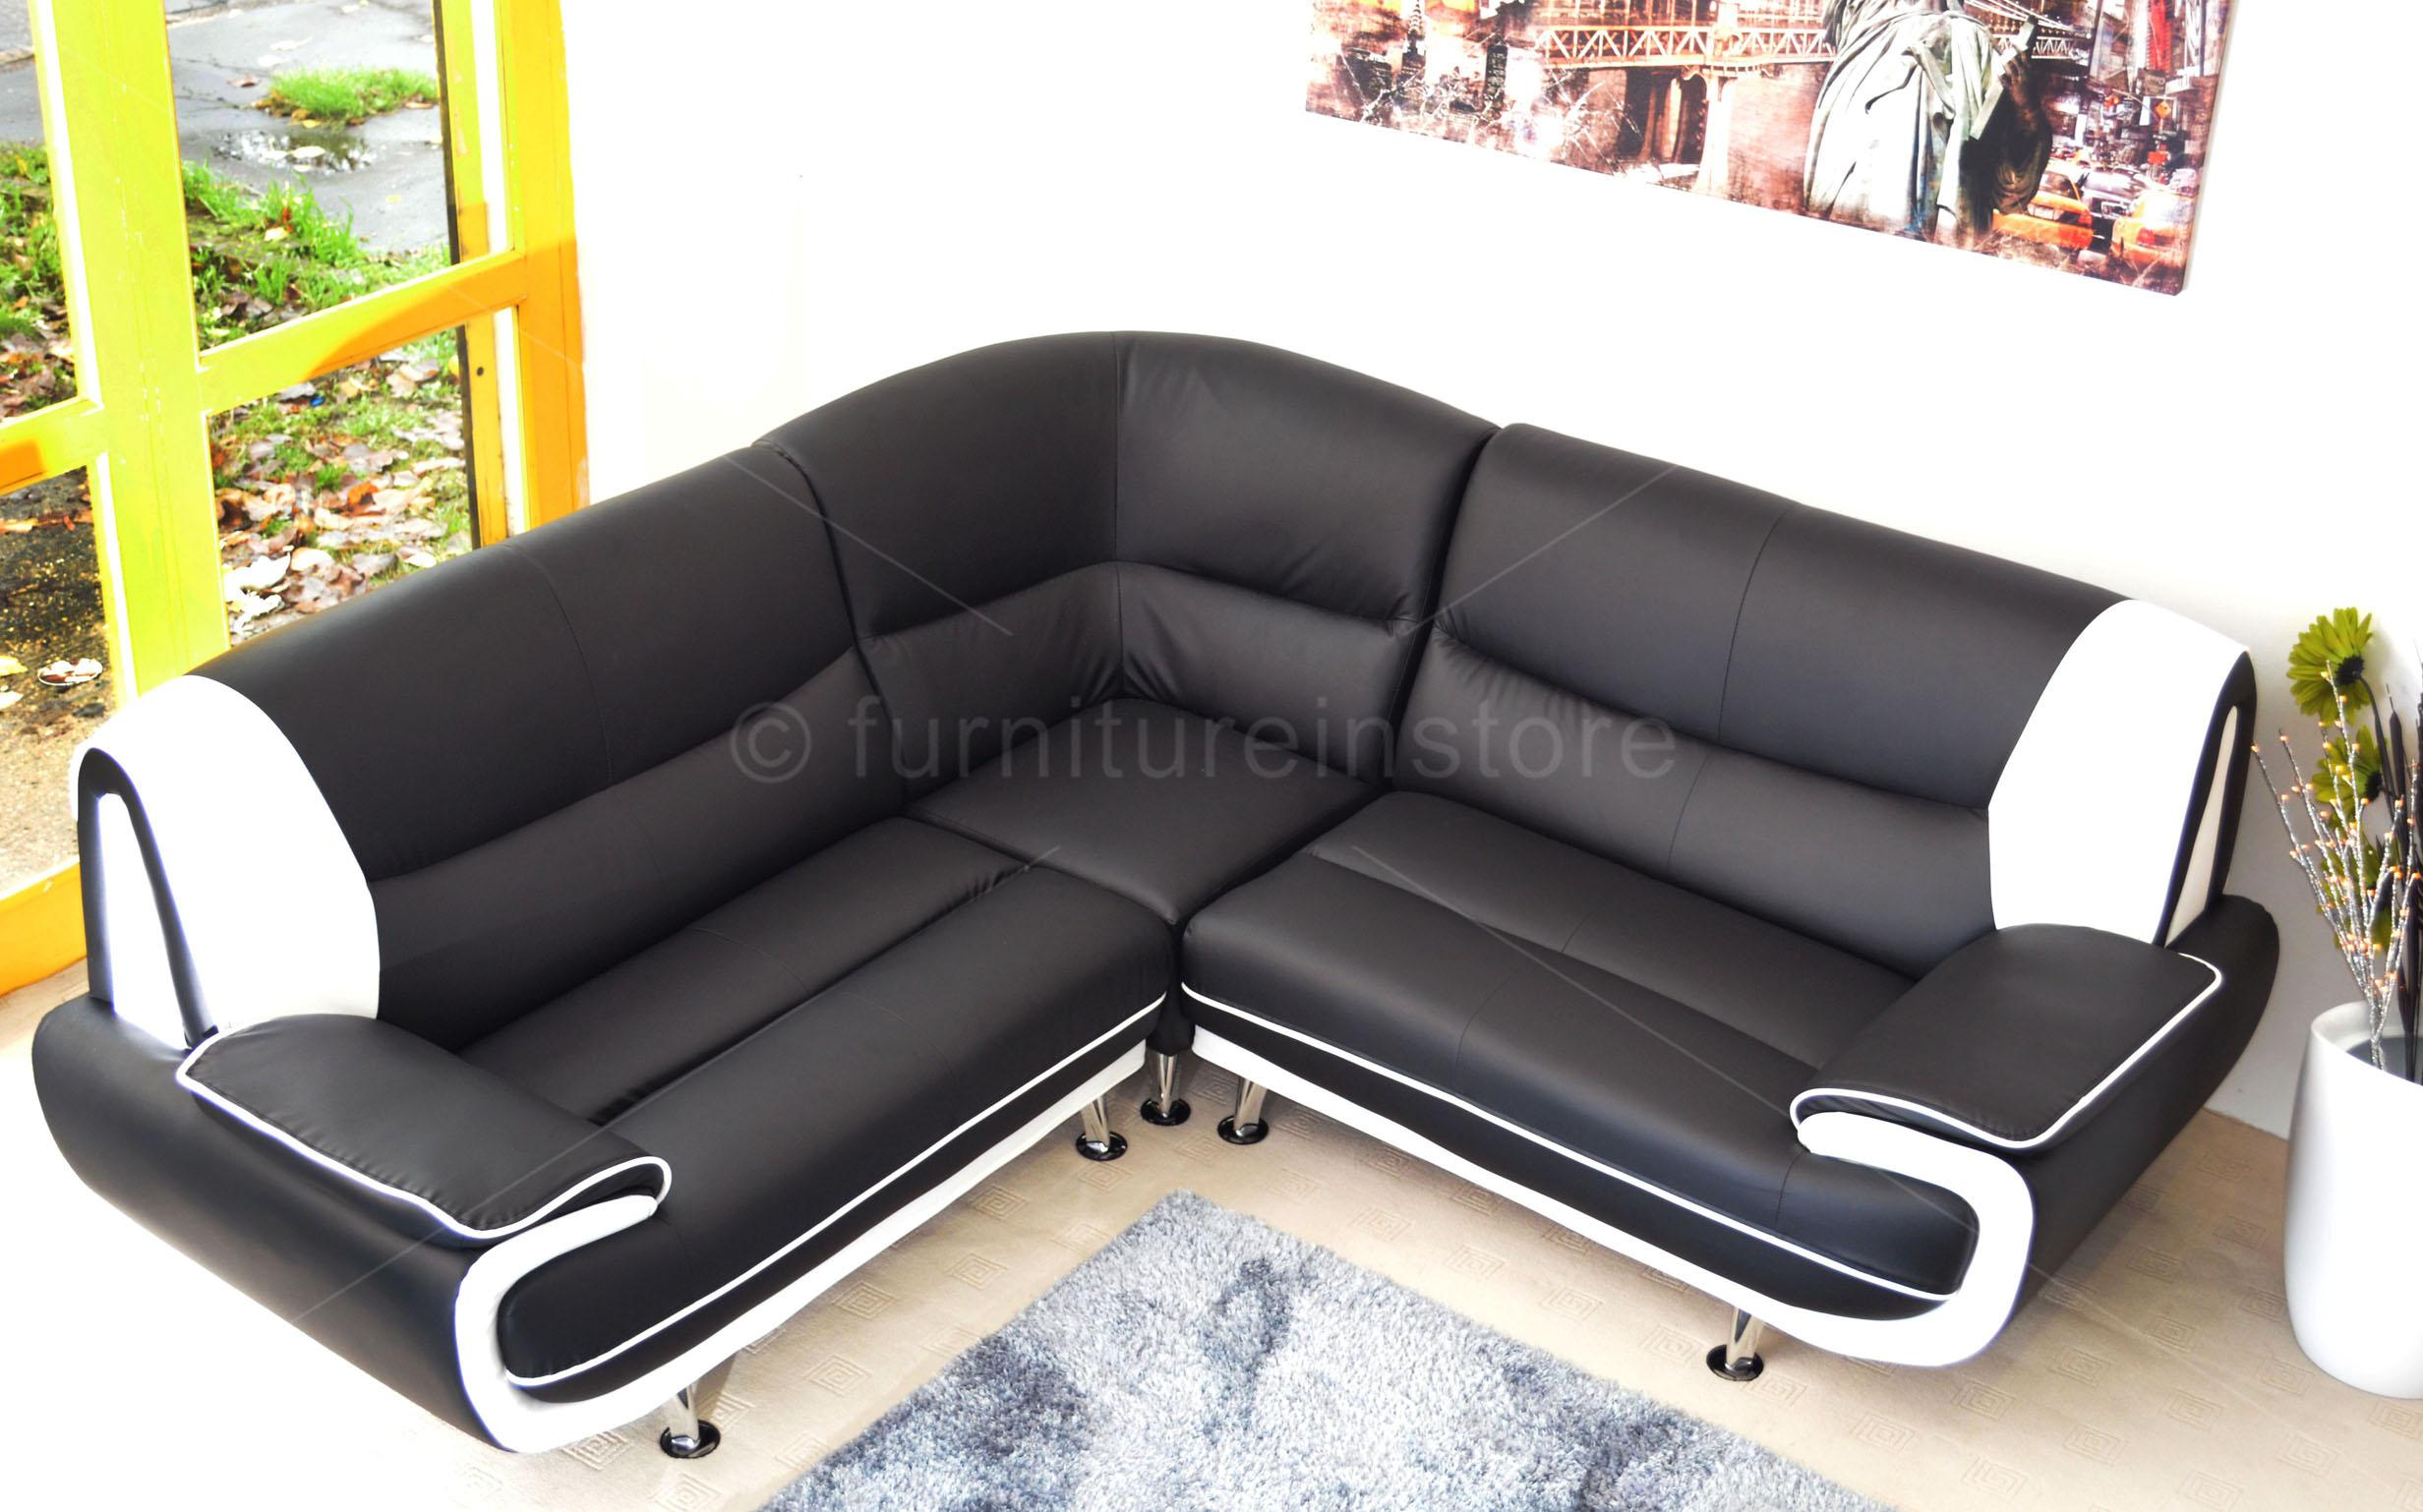 Faux Leather Corner Sofa Sofa Passero Corner Sofas Setttee On Sale In The Uk